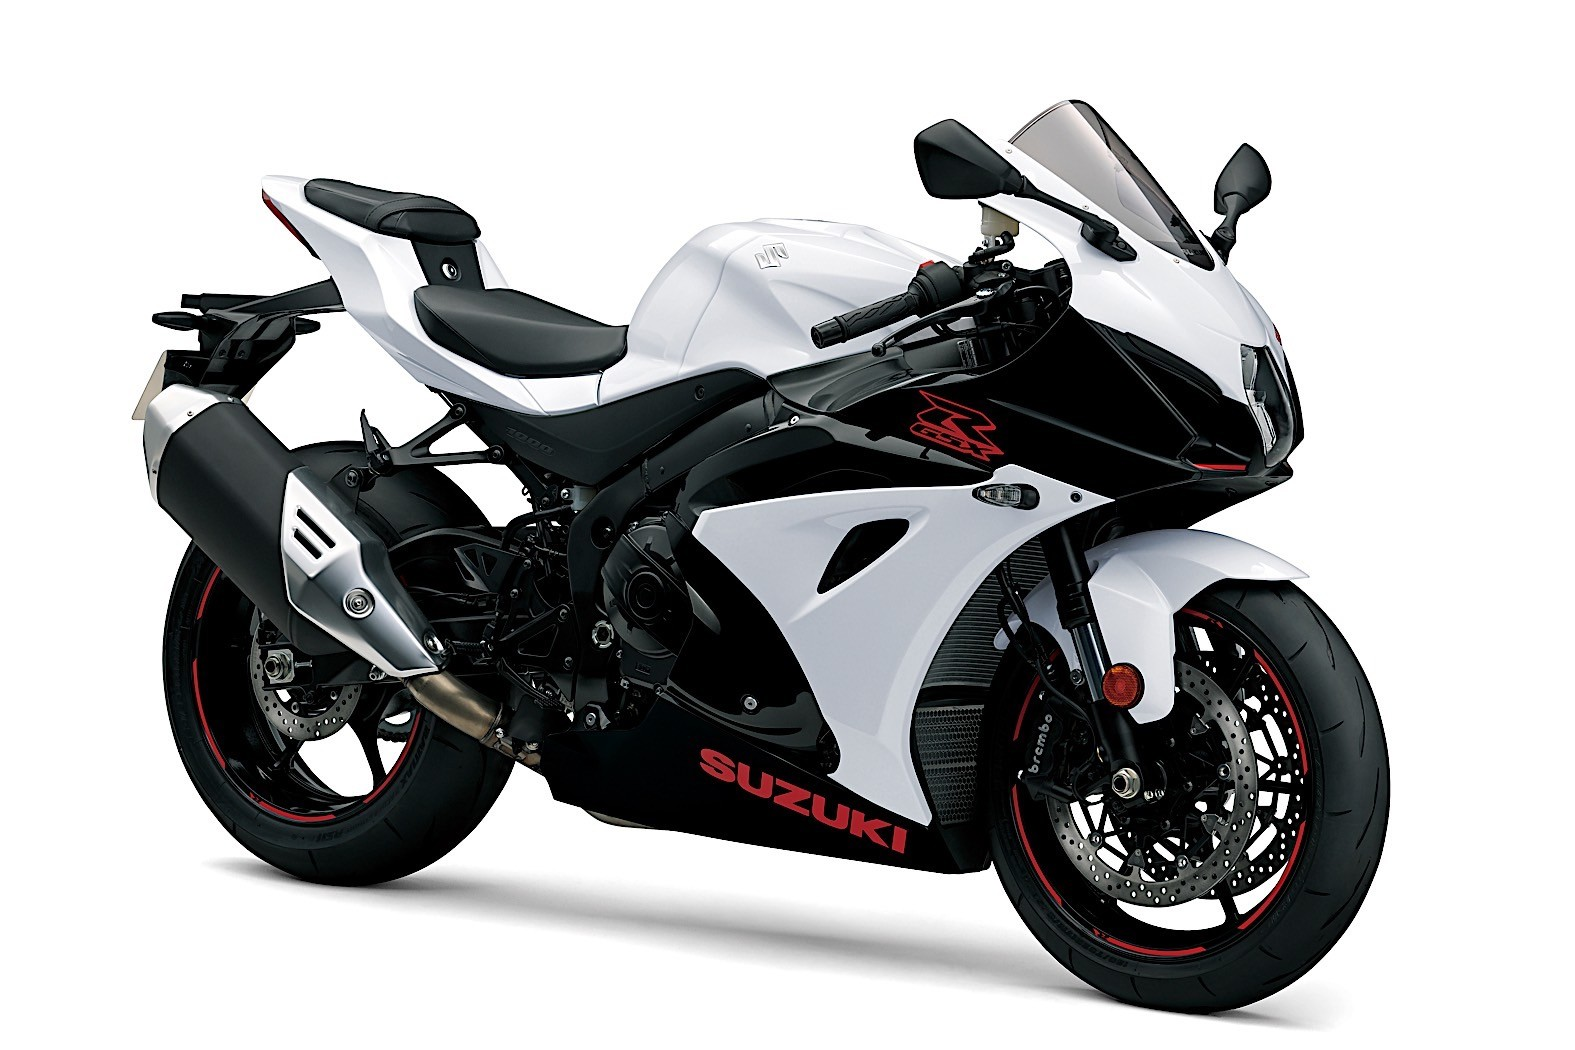 2019-suzuki-motorcycles-shine-in-new-colors-at-the-motorcycle-live-16